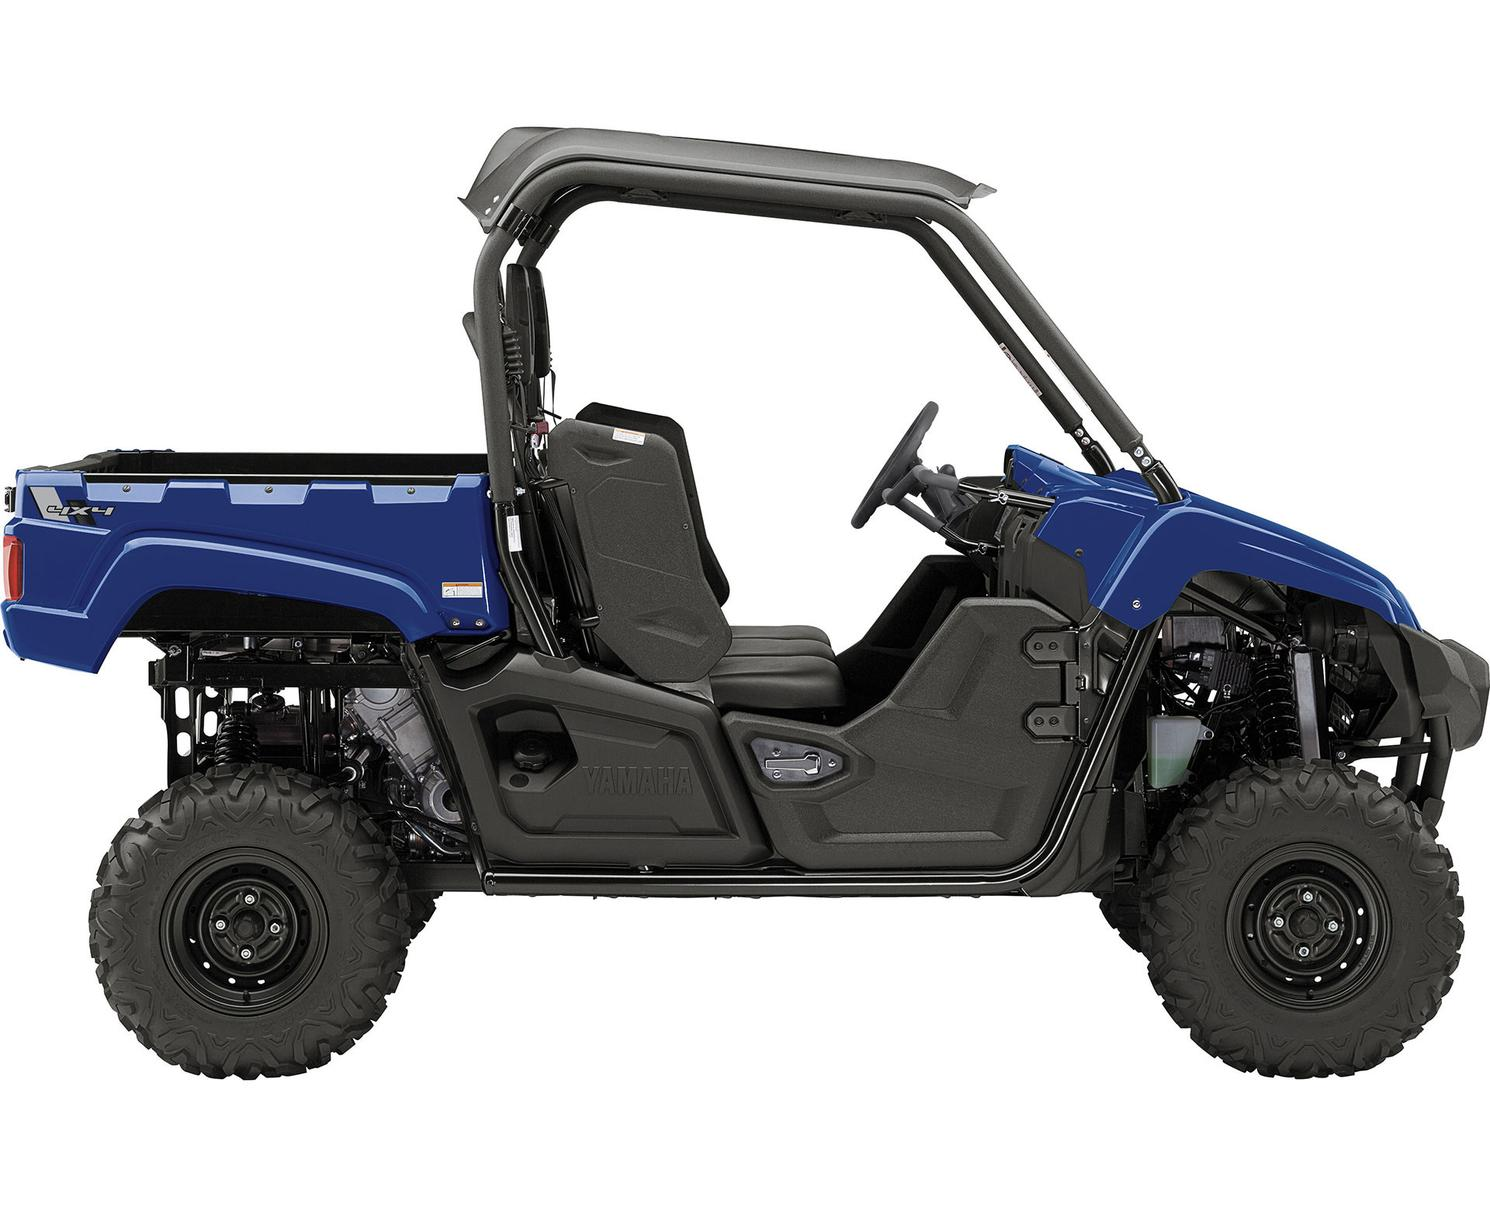 2021 Yamaha Viking DAE Frais inclus+Taxes